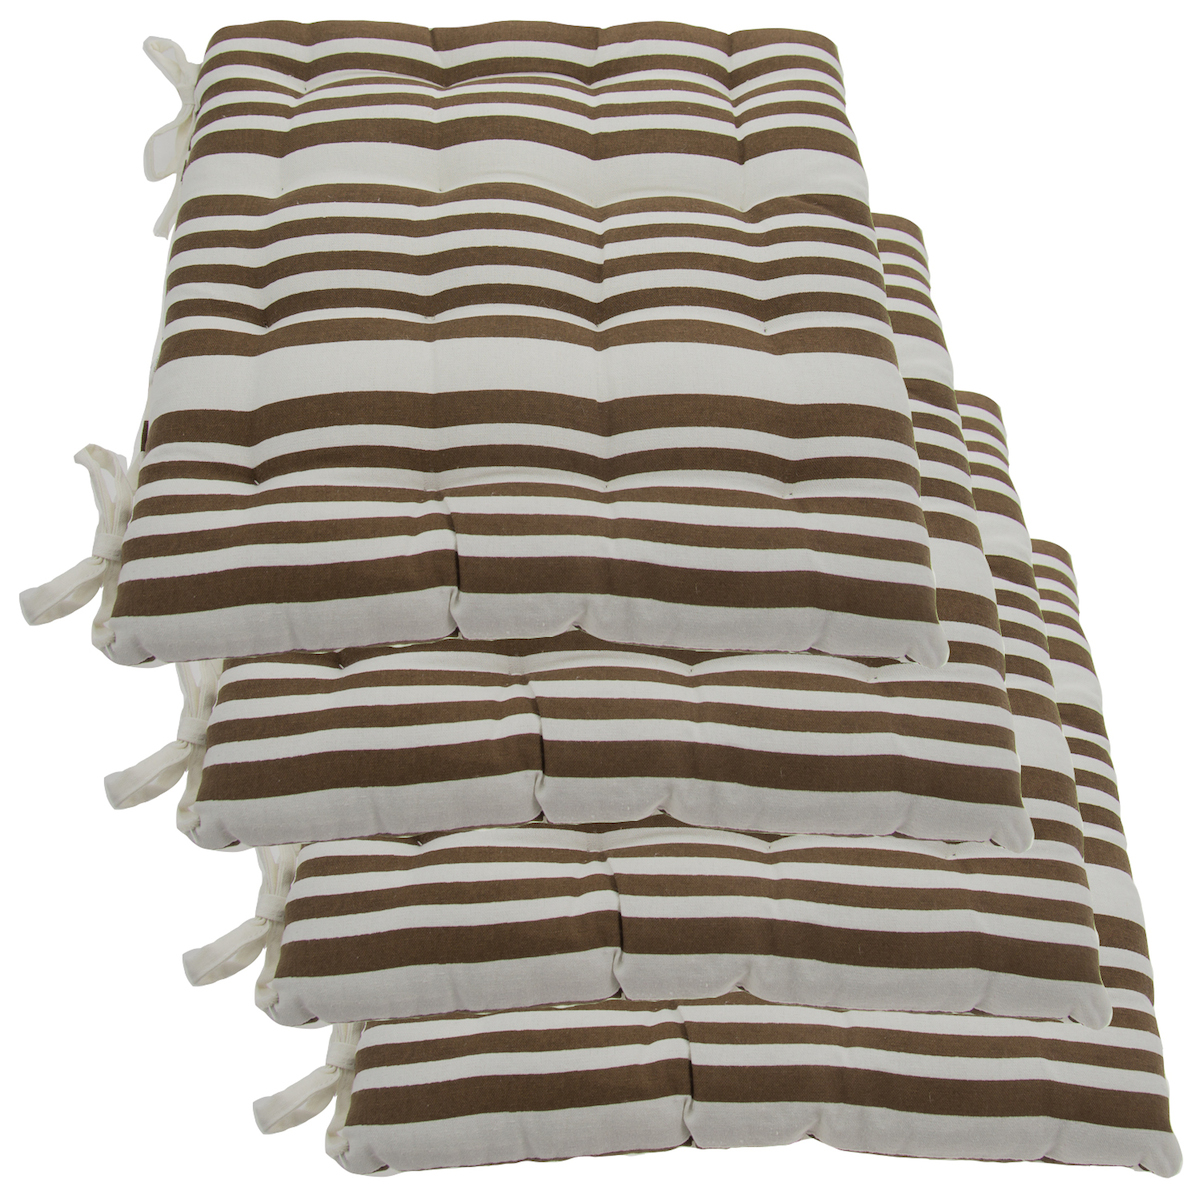 Kitchen Chair Cushion: Set Of 4 Cotton Indoor Reversible Chair Pads & Ties